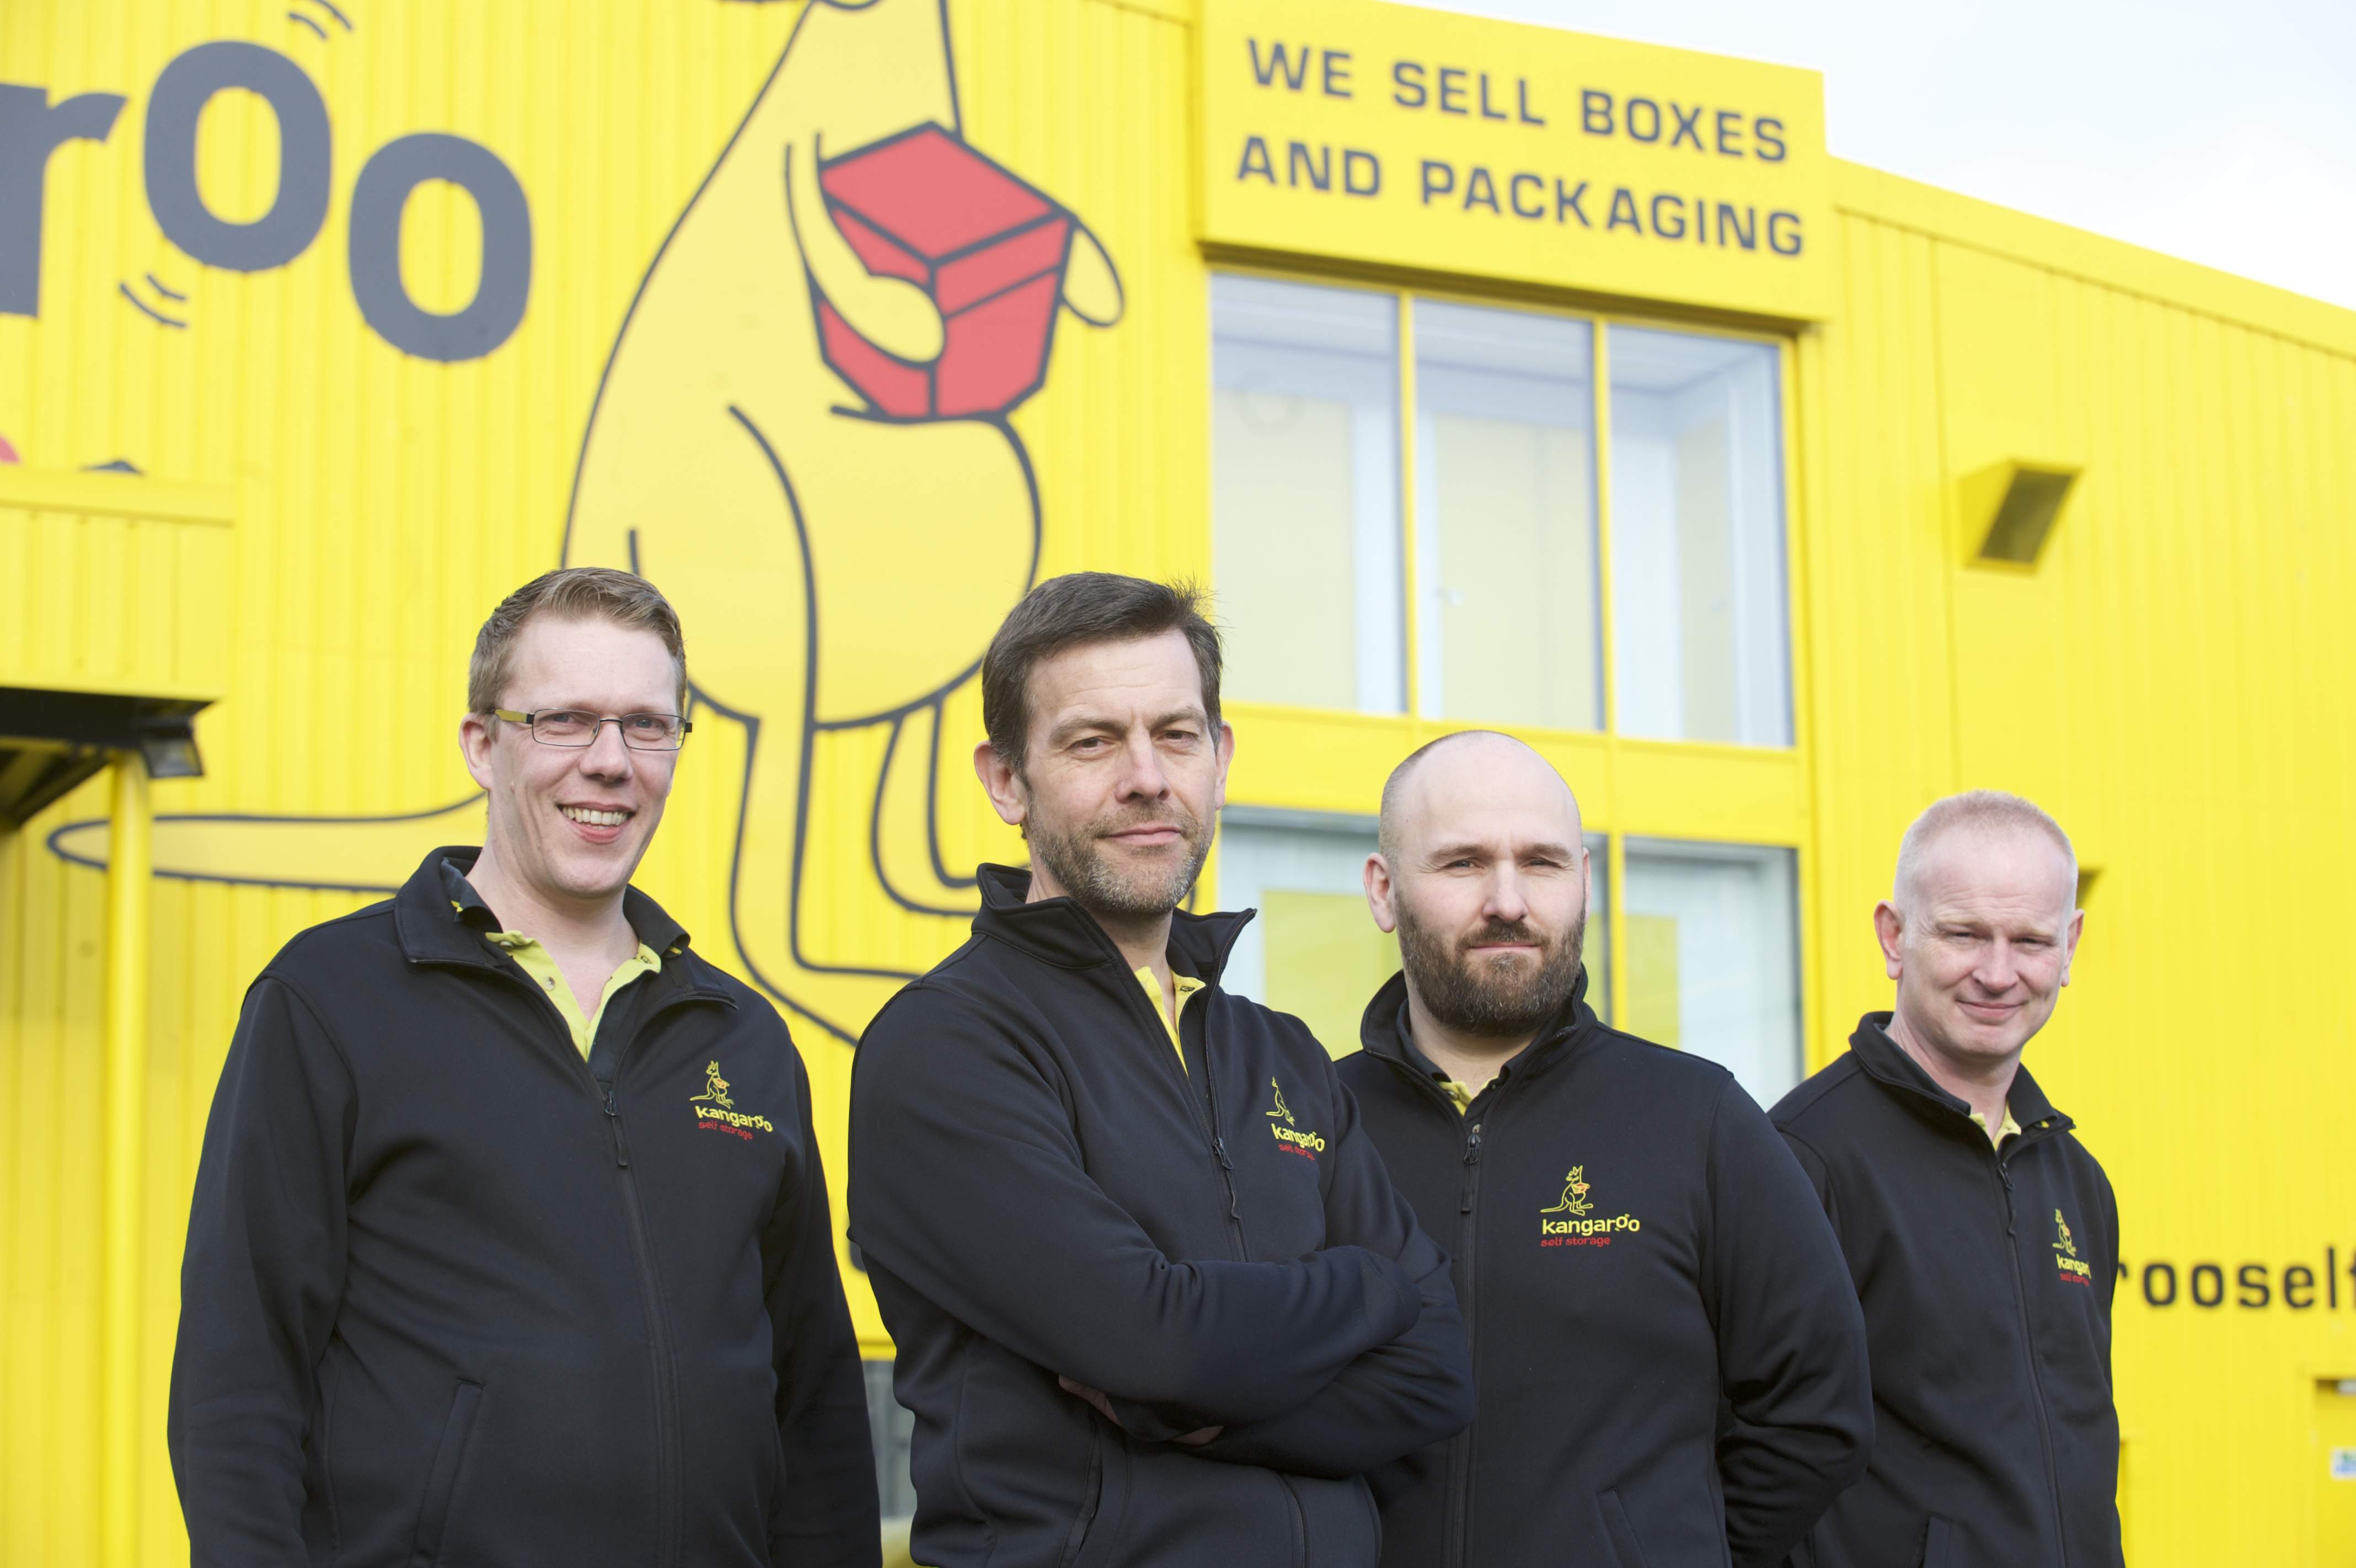 Meet the team, Store Managers with Chris Stevens our CEO